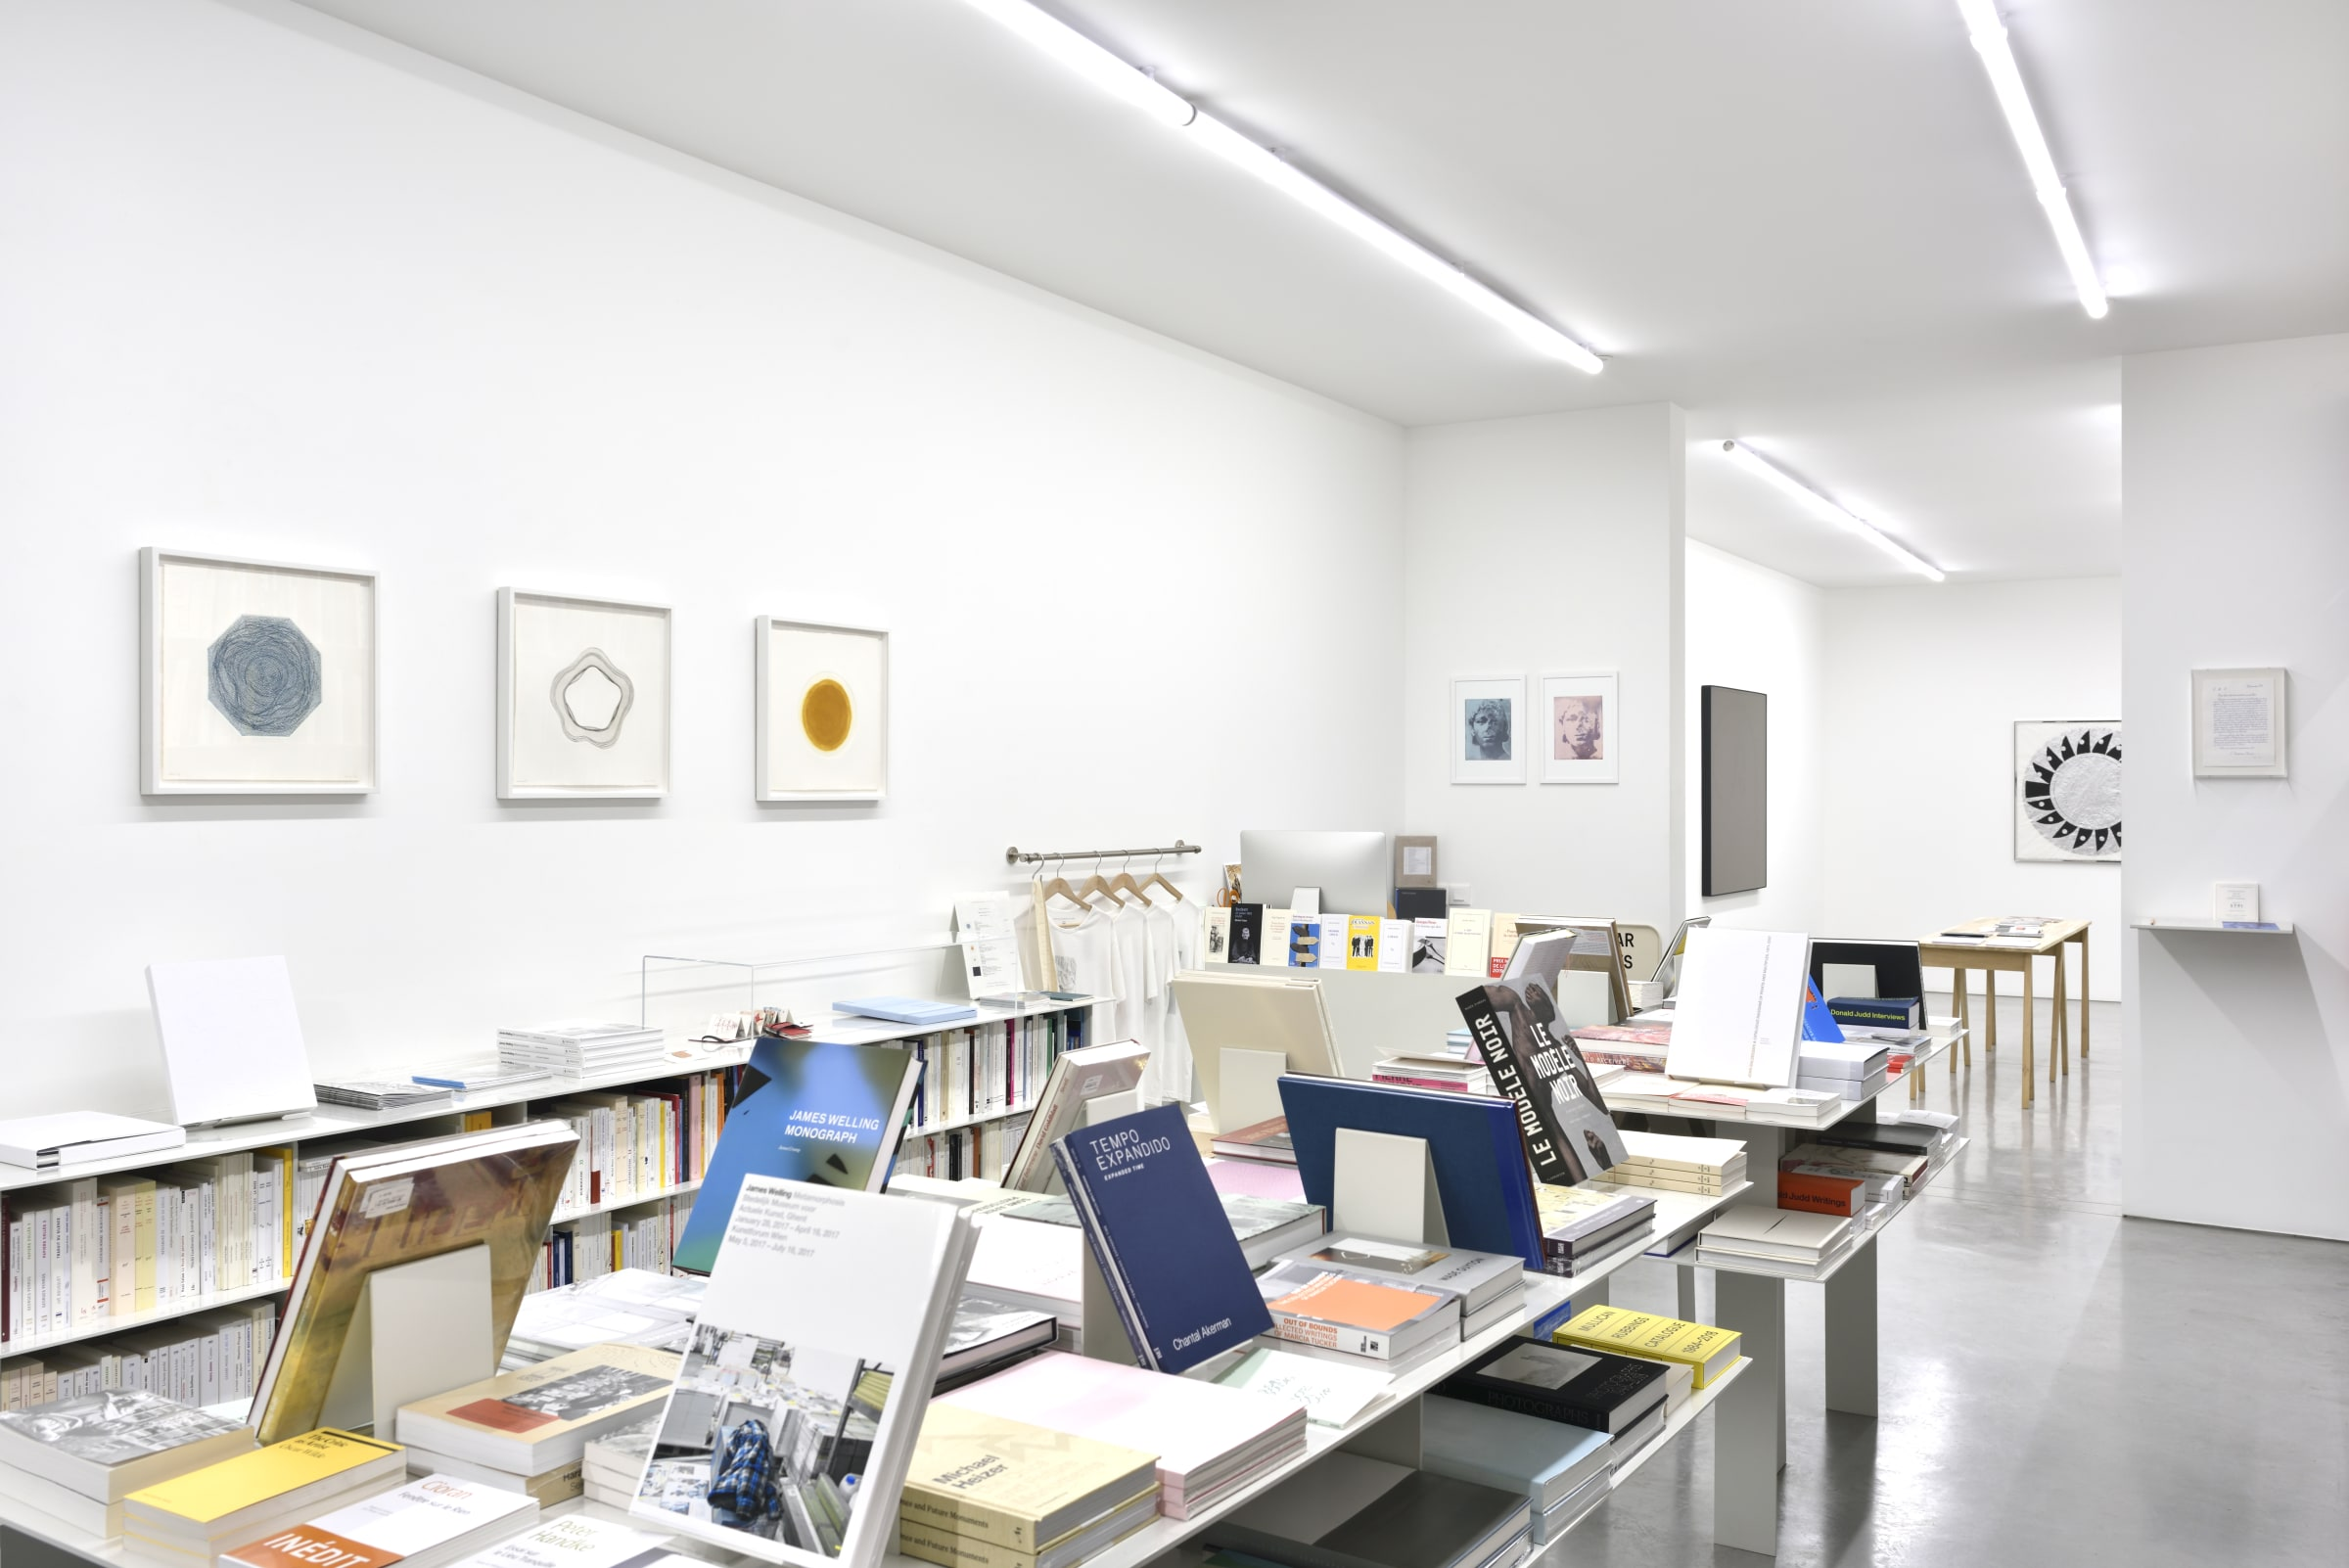 Various framed artworks on brightly lit, white walls. There are shelves displaying books in the center and along the wall.